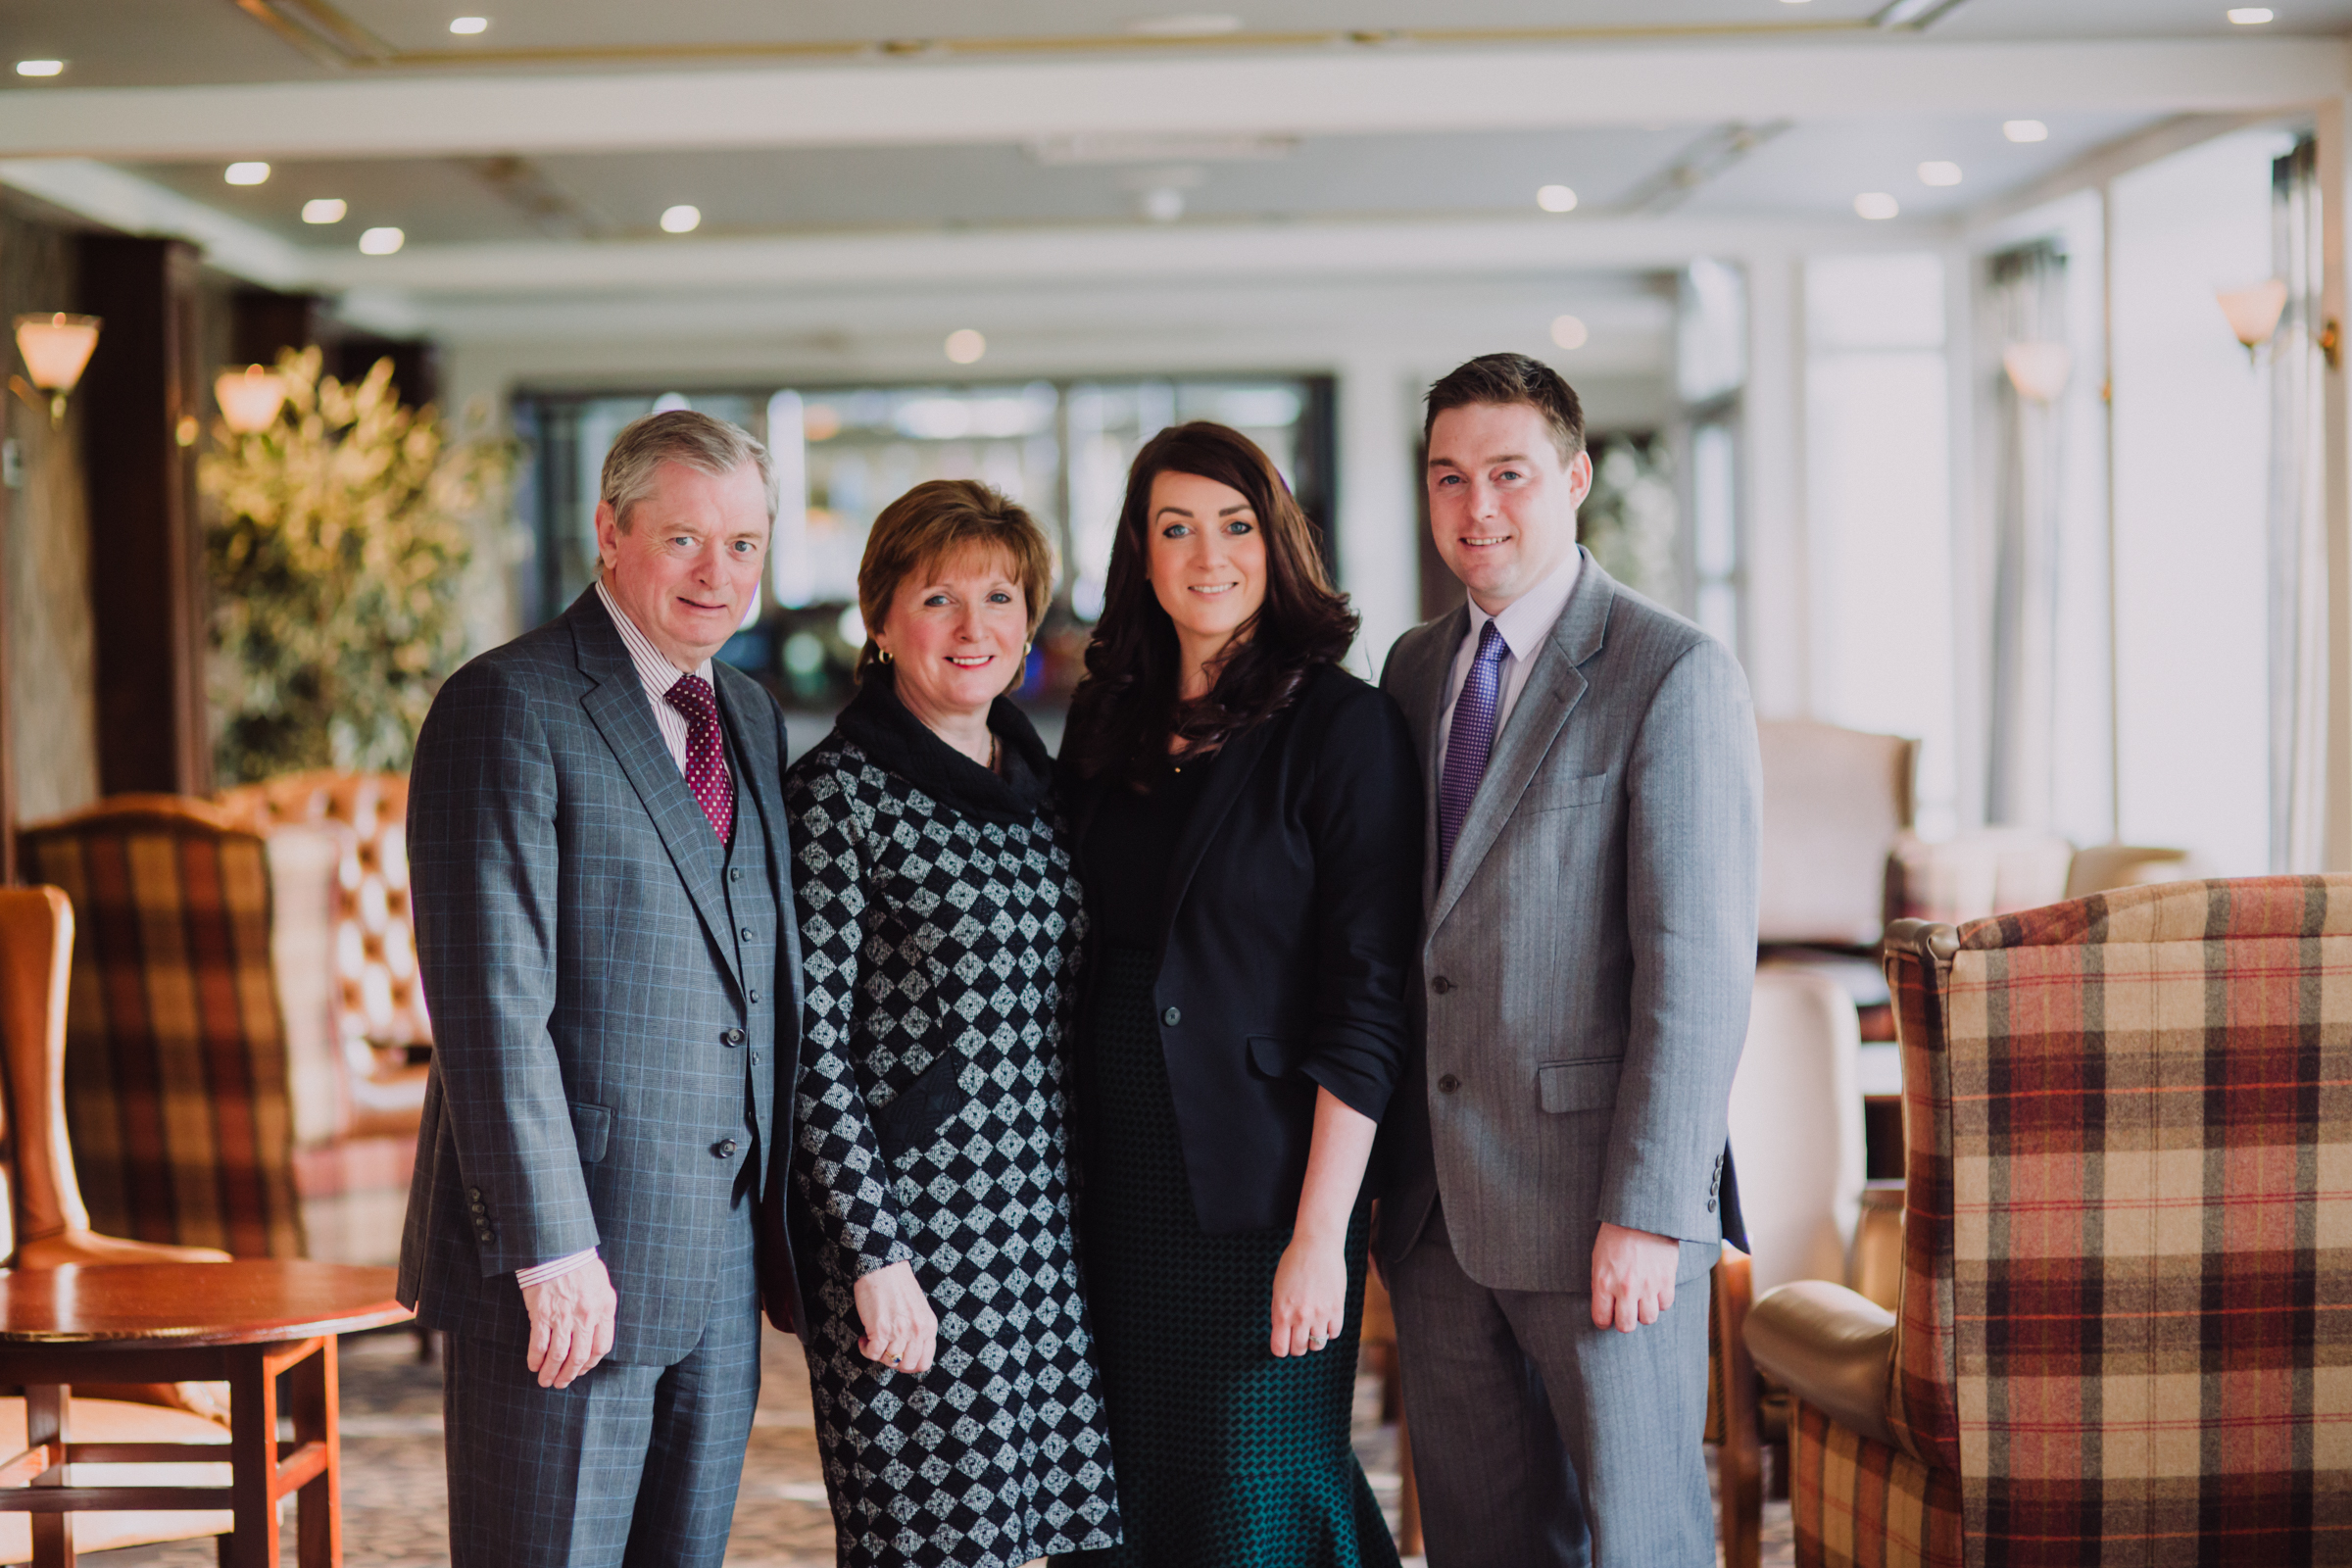 Corr's Corner celebrates 100 years as family business